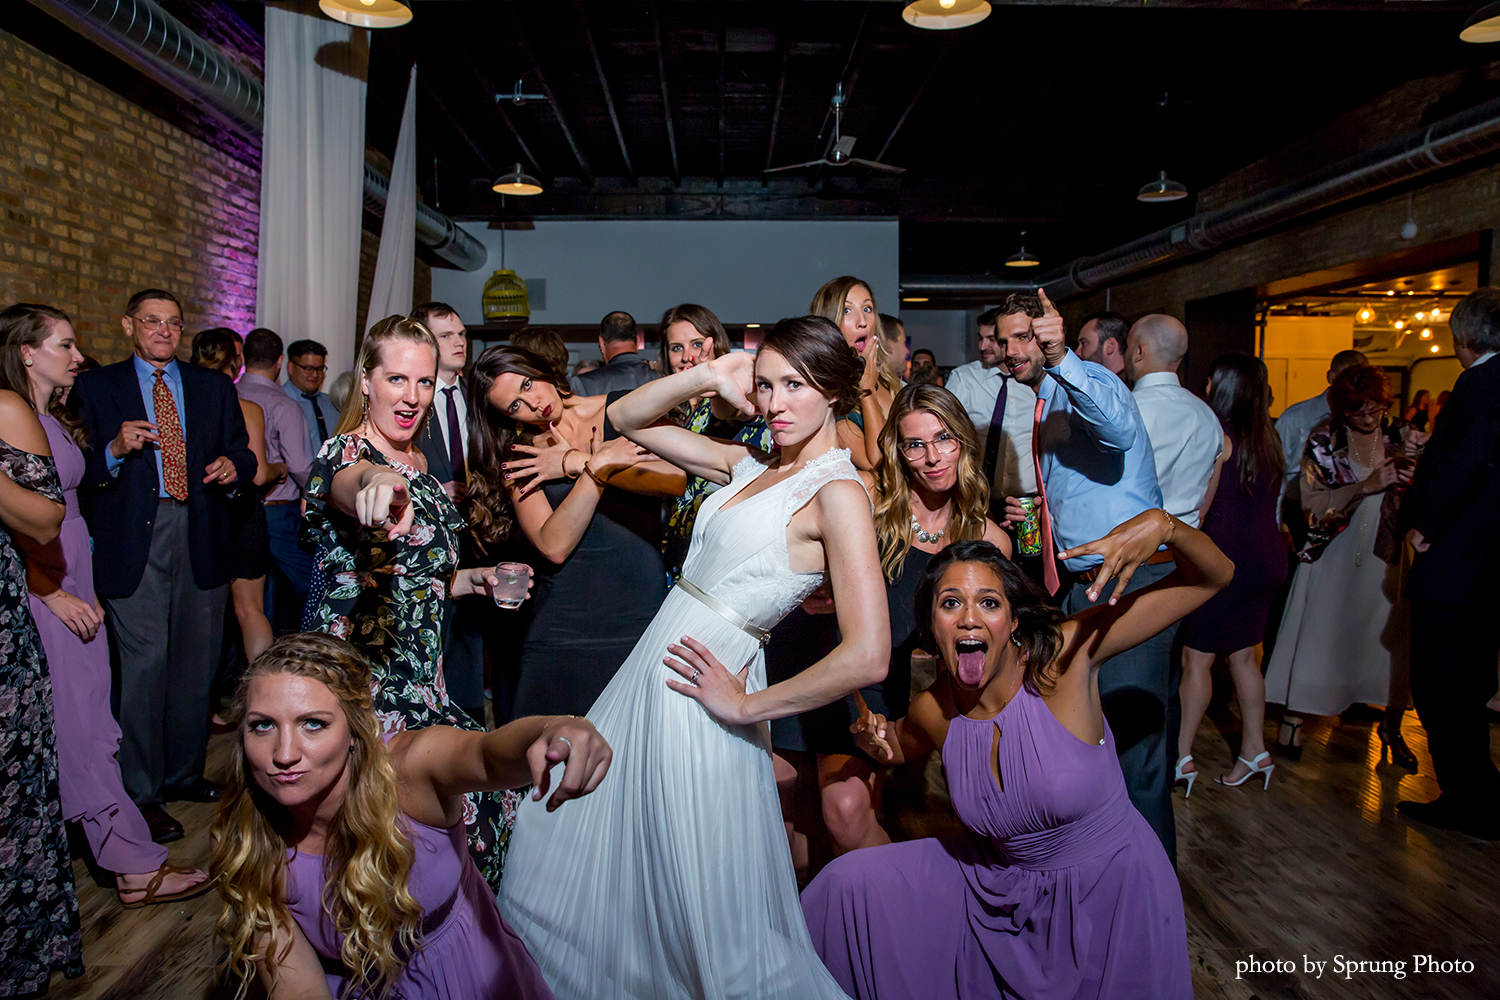 Audrey-and-Aaron-Trigger-Chicago-Wedding-Sprung-Photo-774-web.jpg